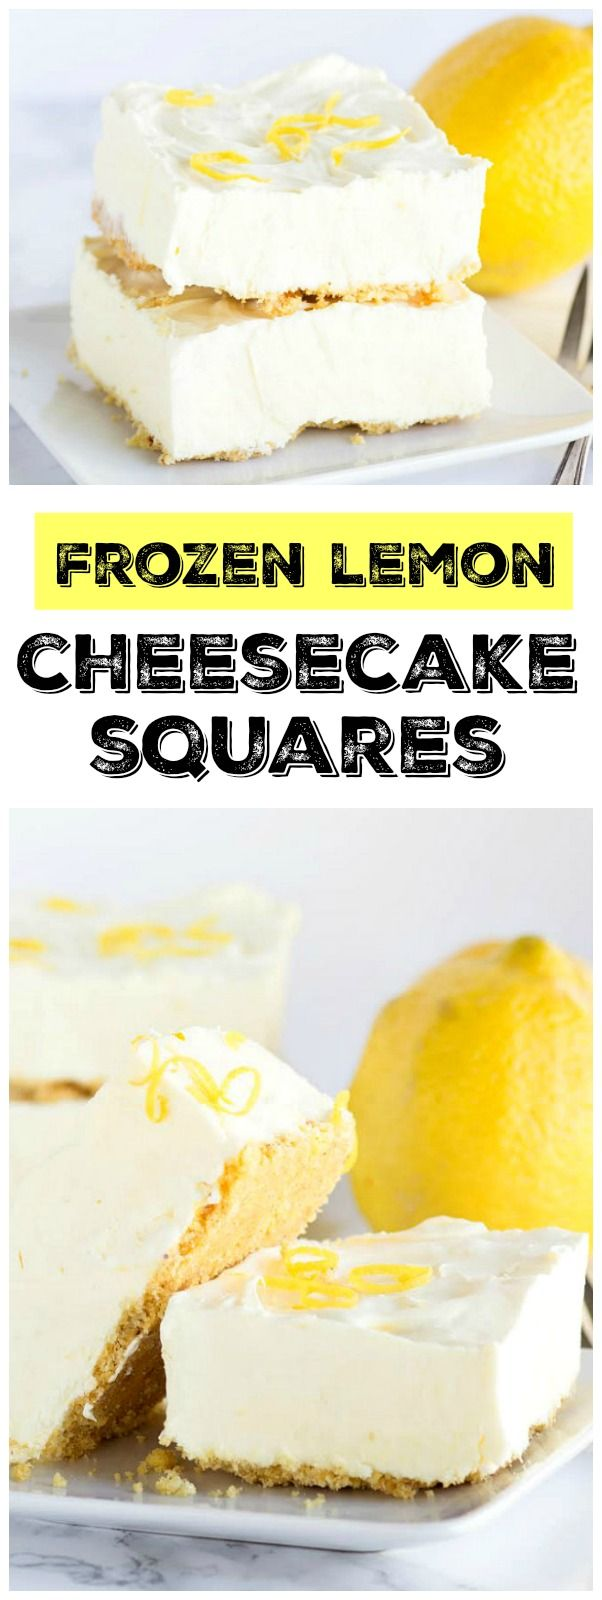 Easy Frozen Lemon Cheesecake Squares : the perfect summer dessert recipe!  : from RecipeGirl.com